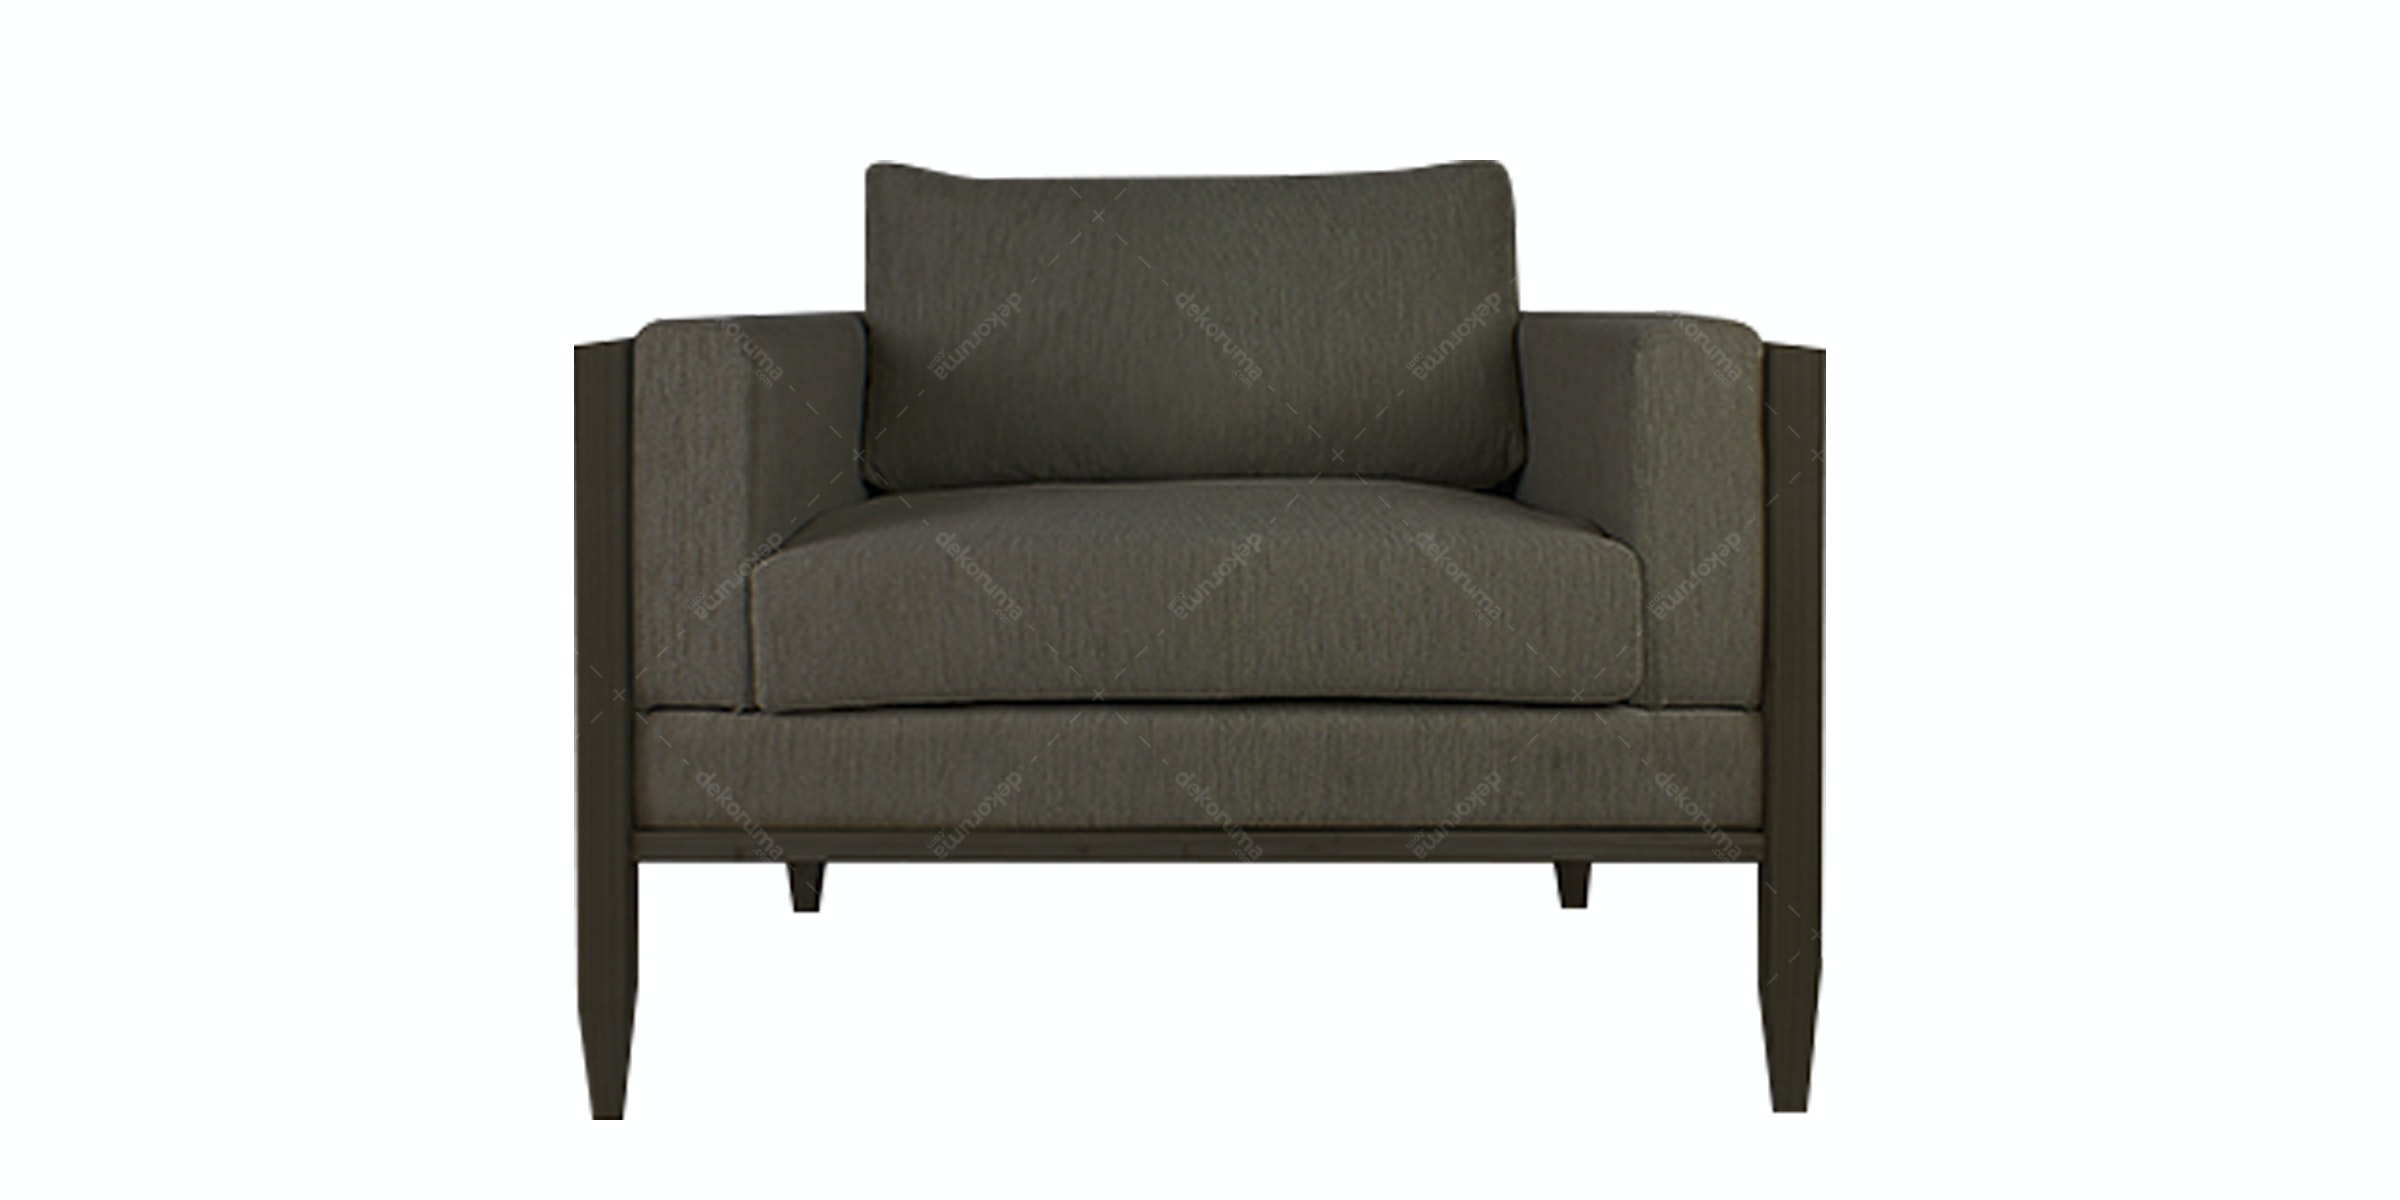 Onel Sofa UNIVORE Dark Grey